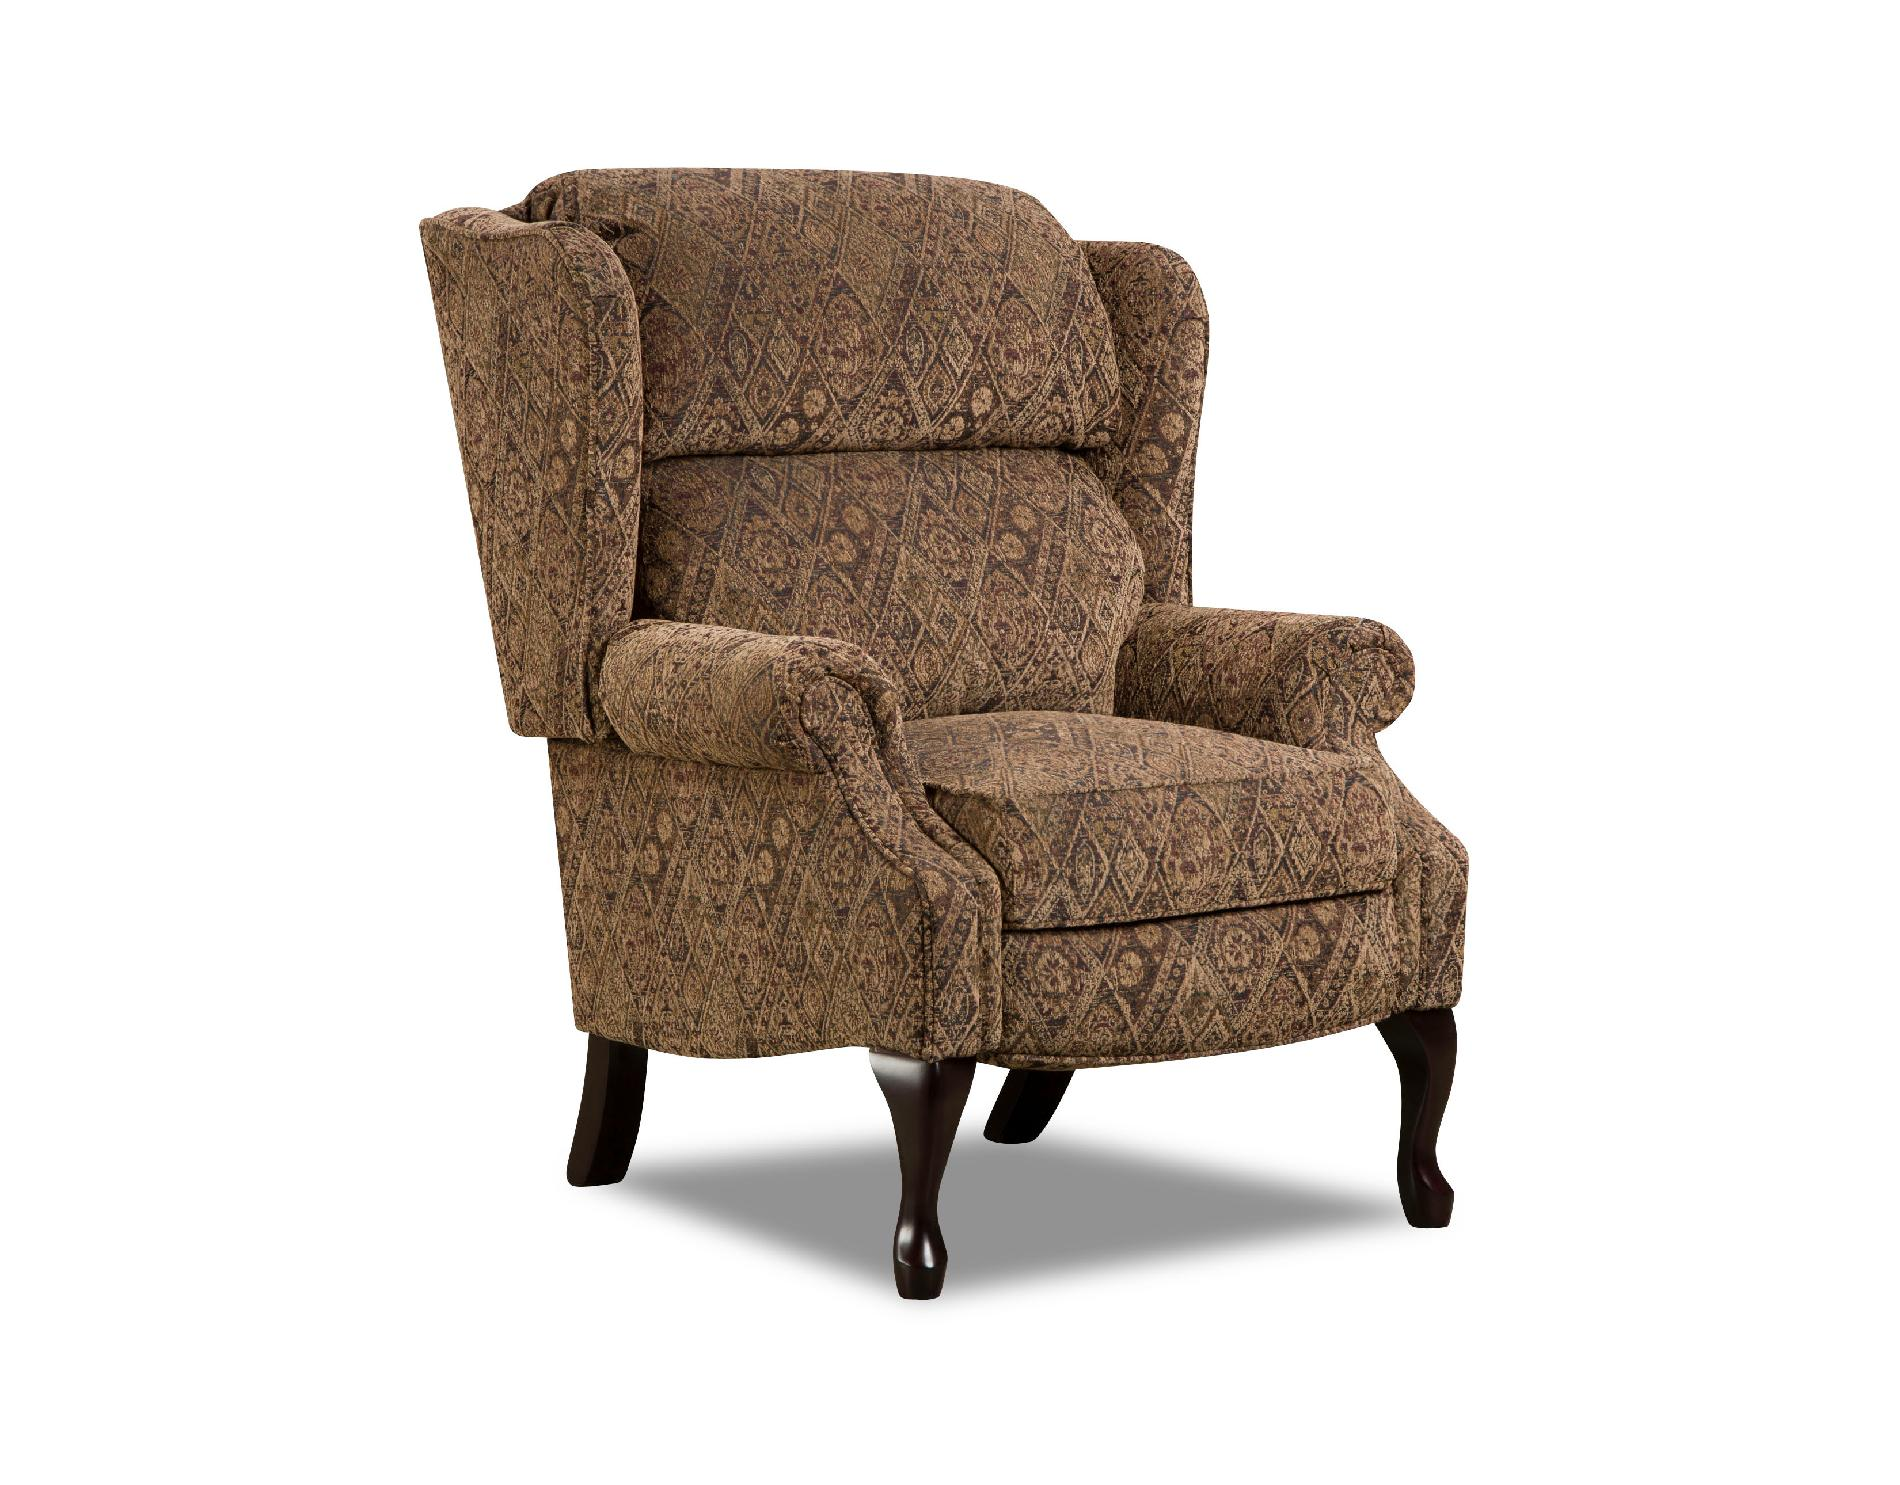 sears recliner chairs land of nod high chair mat simmons upholstery multi brown amalfi antique style